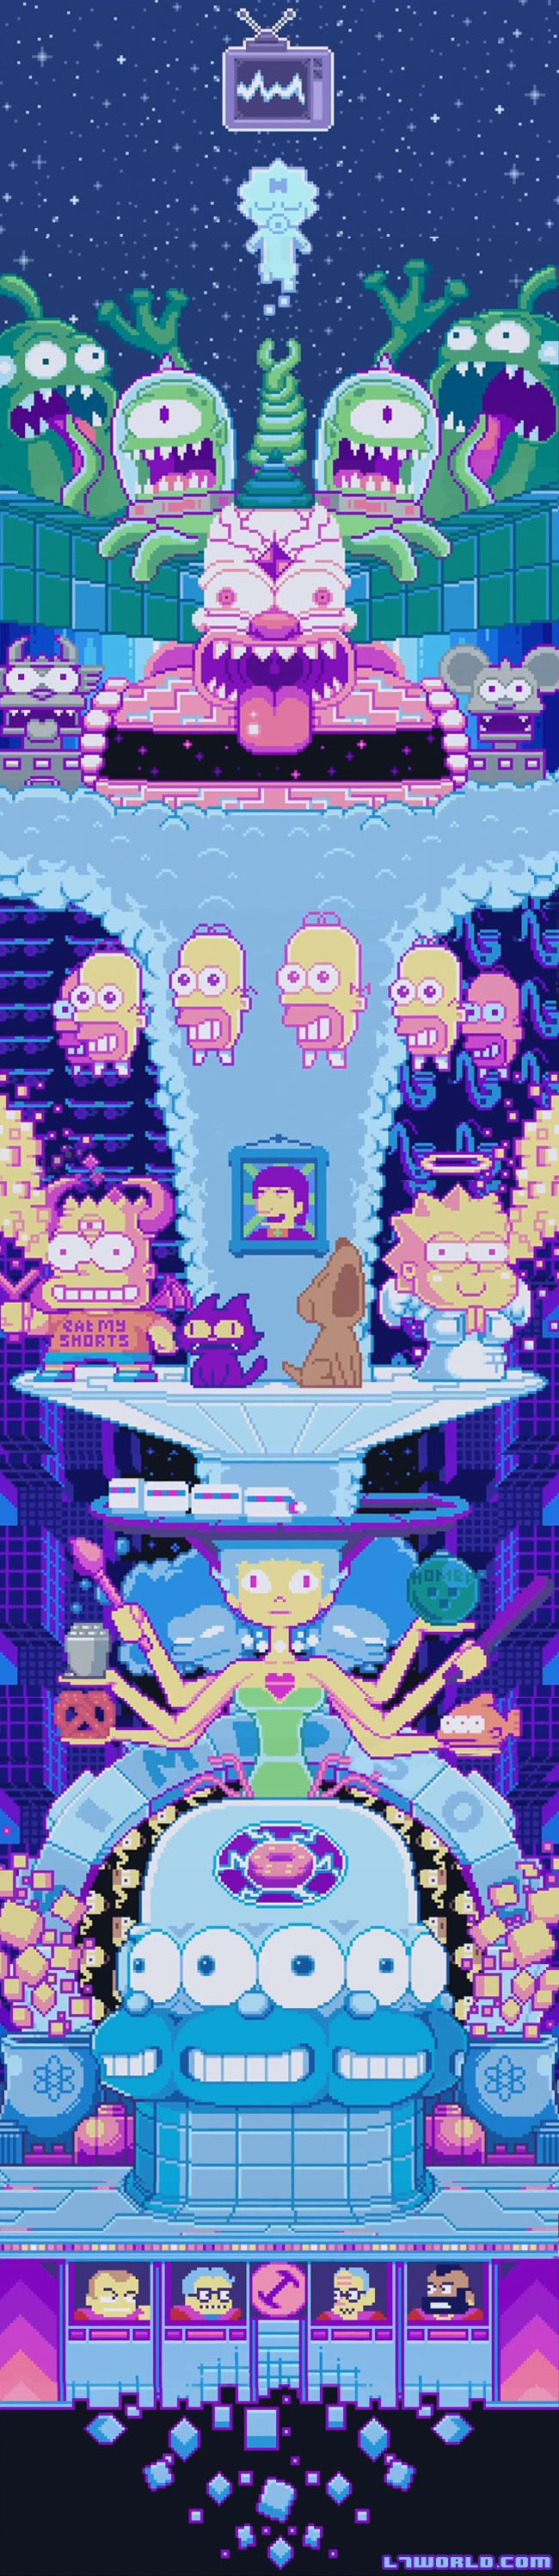 "The Simpsons have never been edgier than in this week's episode ""My Fare Lady."" The opening sequence has been reimagined in pixel form complete with Lo-fi video game music.The family gets digitized into a video game world resembling art by Robertson titled ""We Made It."" The camera pans up a towering homage to classic episodes that includes the Mr. Sparkle mascot, the Stonecutters, and the infamous three-eyed fish. http://l7world.com/2015/02/simpsons-couch-gag-features-pixel-art-by-fans.html"